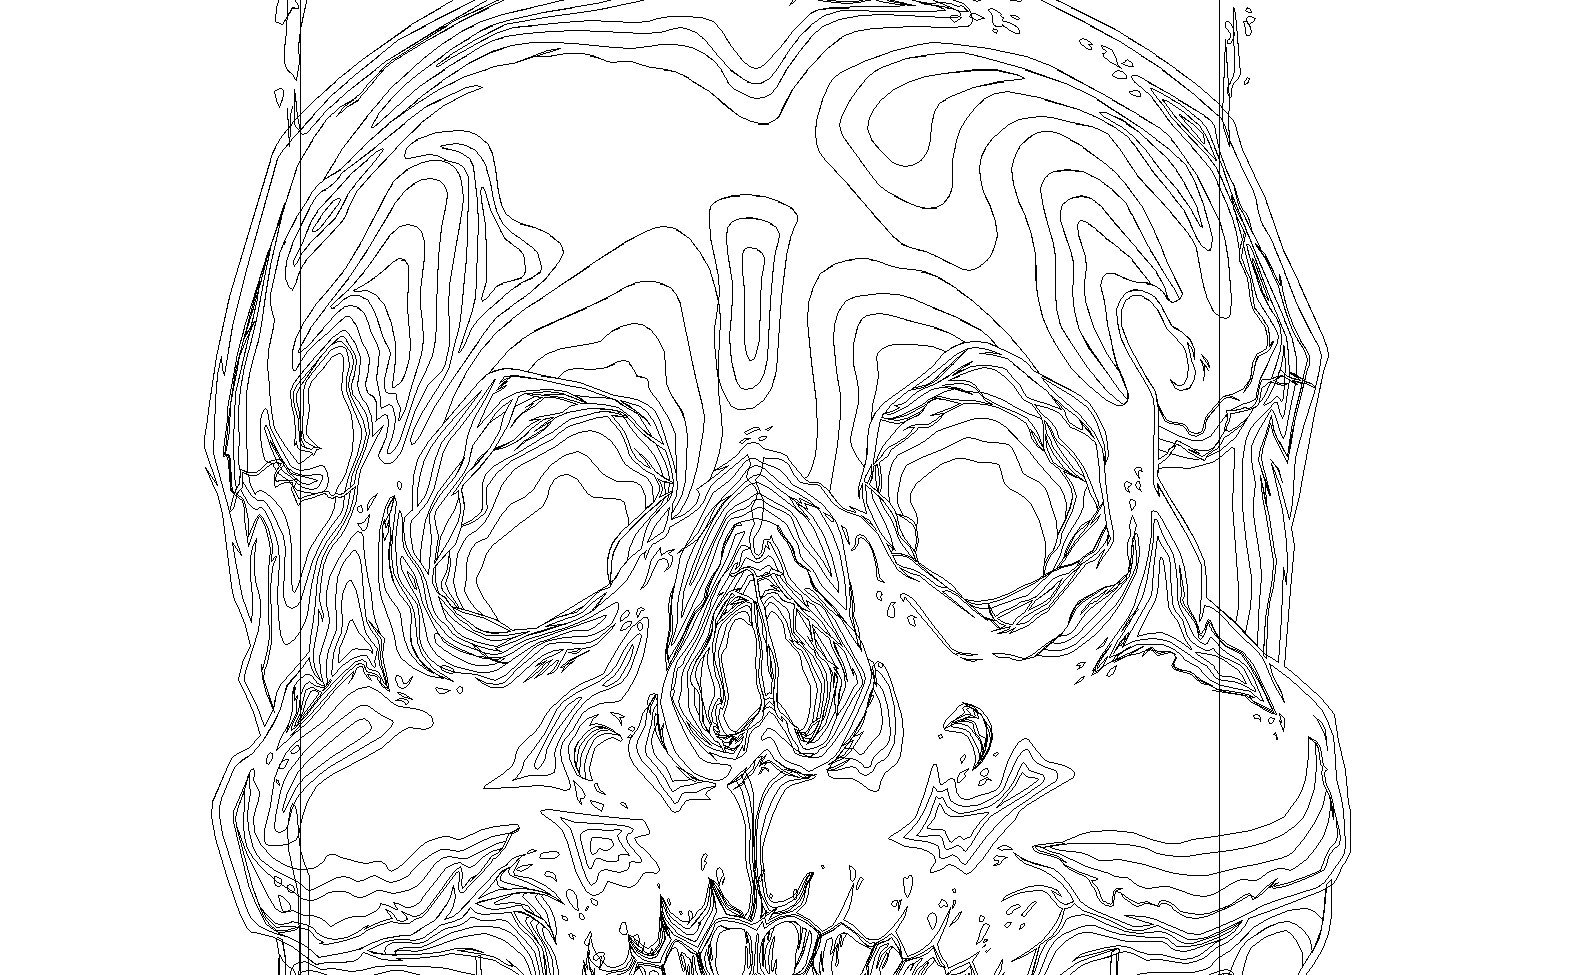 squidMouth_Skull_final_05.jpg